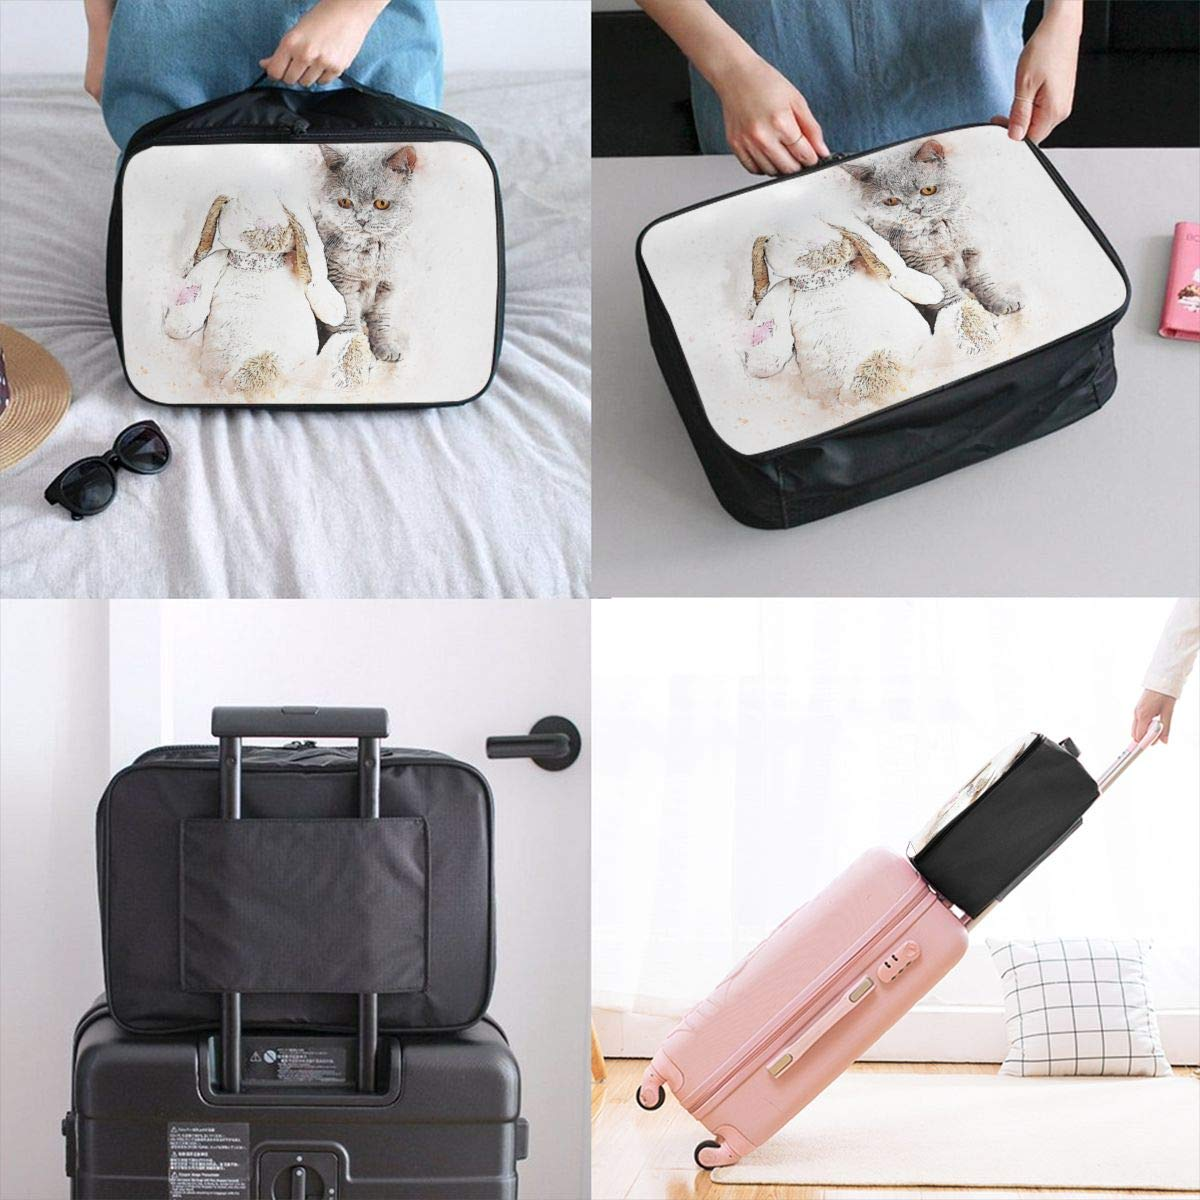 Cat Art Abstract Pet Travel Lightweight Waterproof Foldable Storage Carry Luggage Large Capacity Portable Luggage Bag Duffel Bag